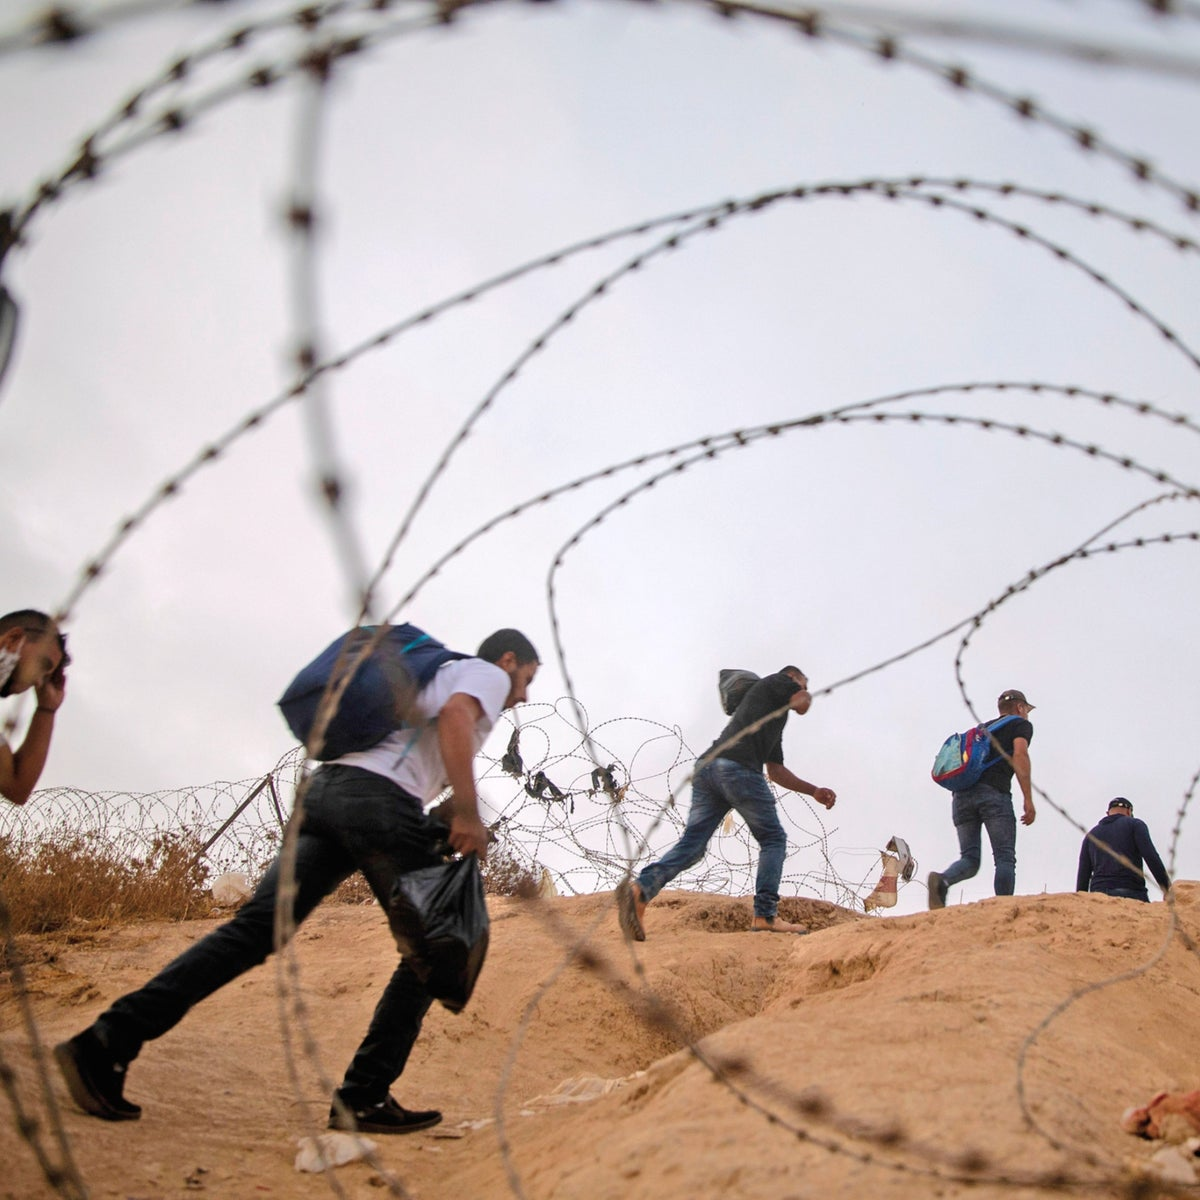 Palestinian workers cross illegally into Israel from the West Bank, in a 2020 photo. Every mention of Palestinian suffering is seen as harmful to the state.